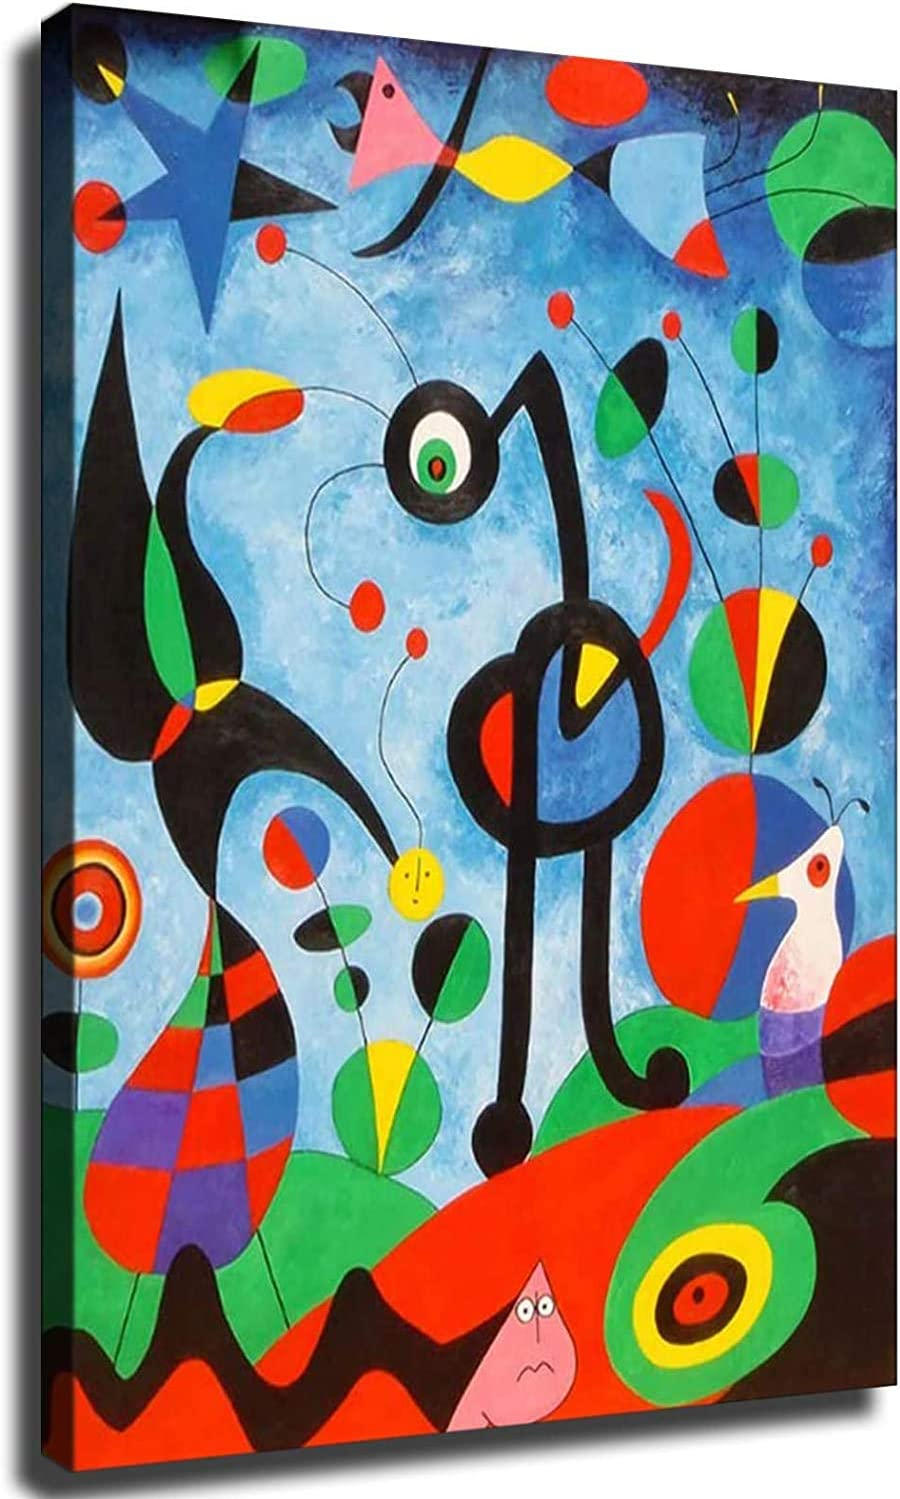 Home Decor Print Oil Painting on Canvas Wall Art, Canvas Abstract Figure Painting (16x24 inch,Framed)